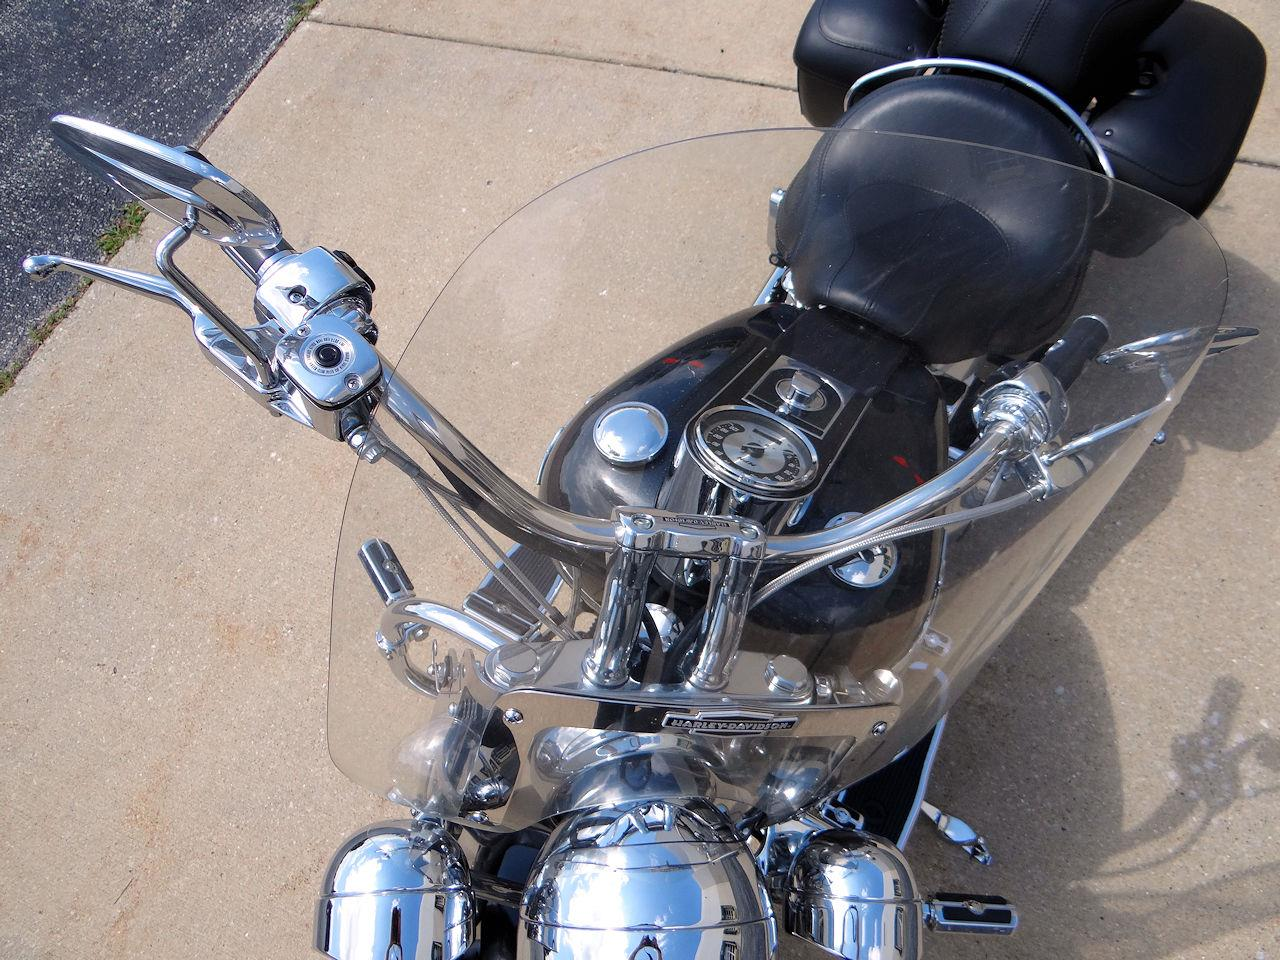 2006 Harley-Davidson Motorcycle (CC-1353389) for sale in O'Fallon, Illinois